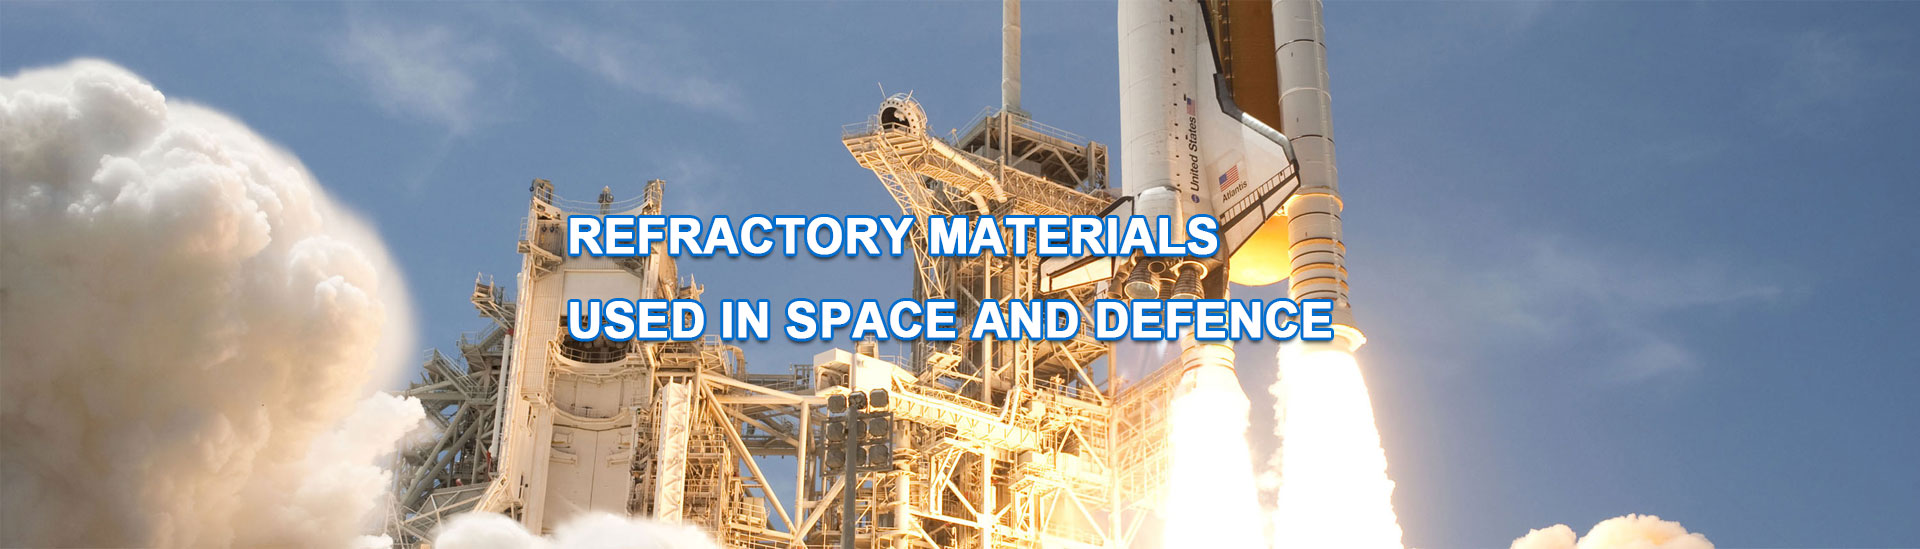 Refractory materials used in SPACE AND DEFENCE.